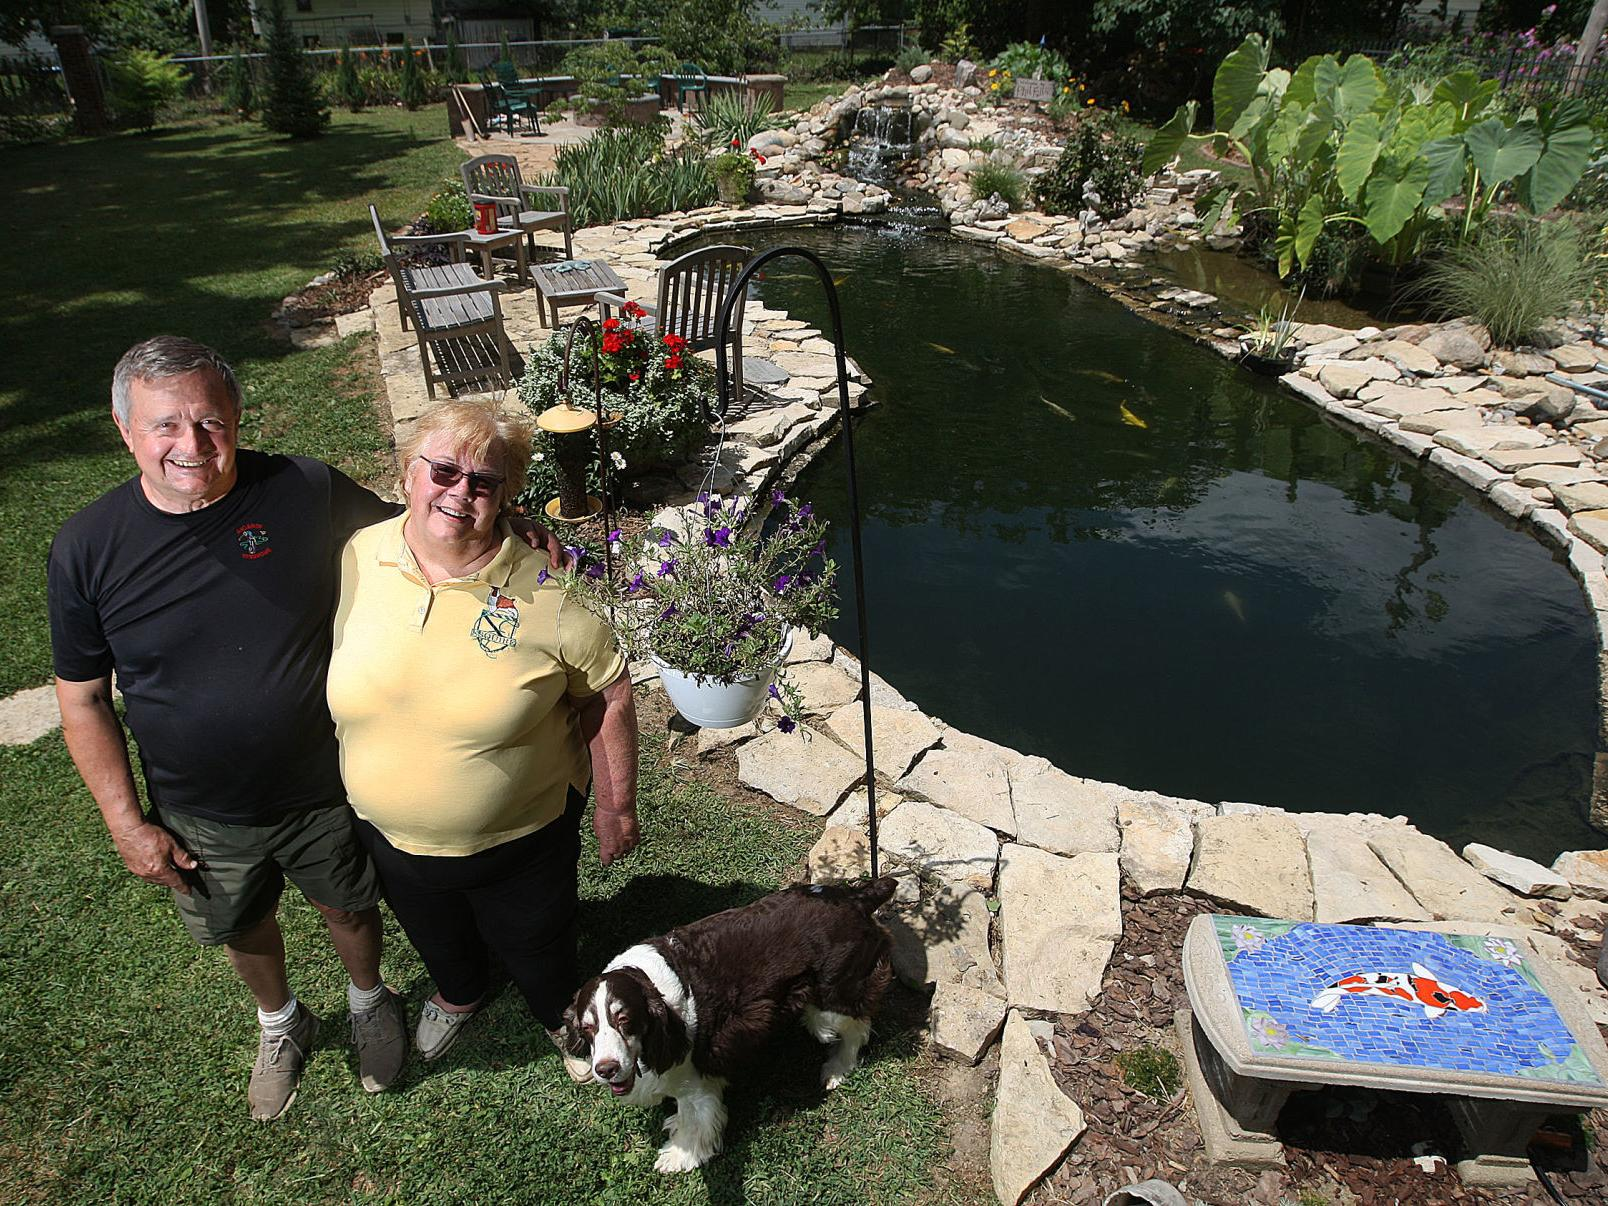 Decatur Couple S Elaborate Koi Pond Featured In Region Wide Tour Local Herald Review Com